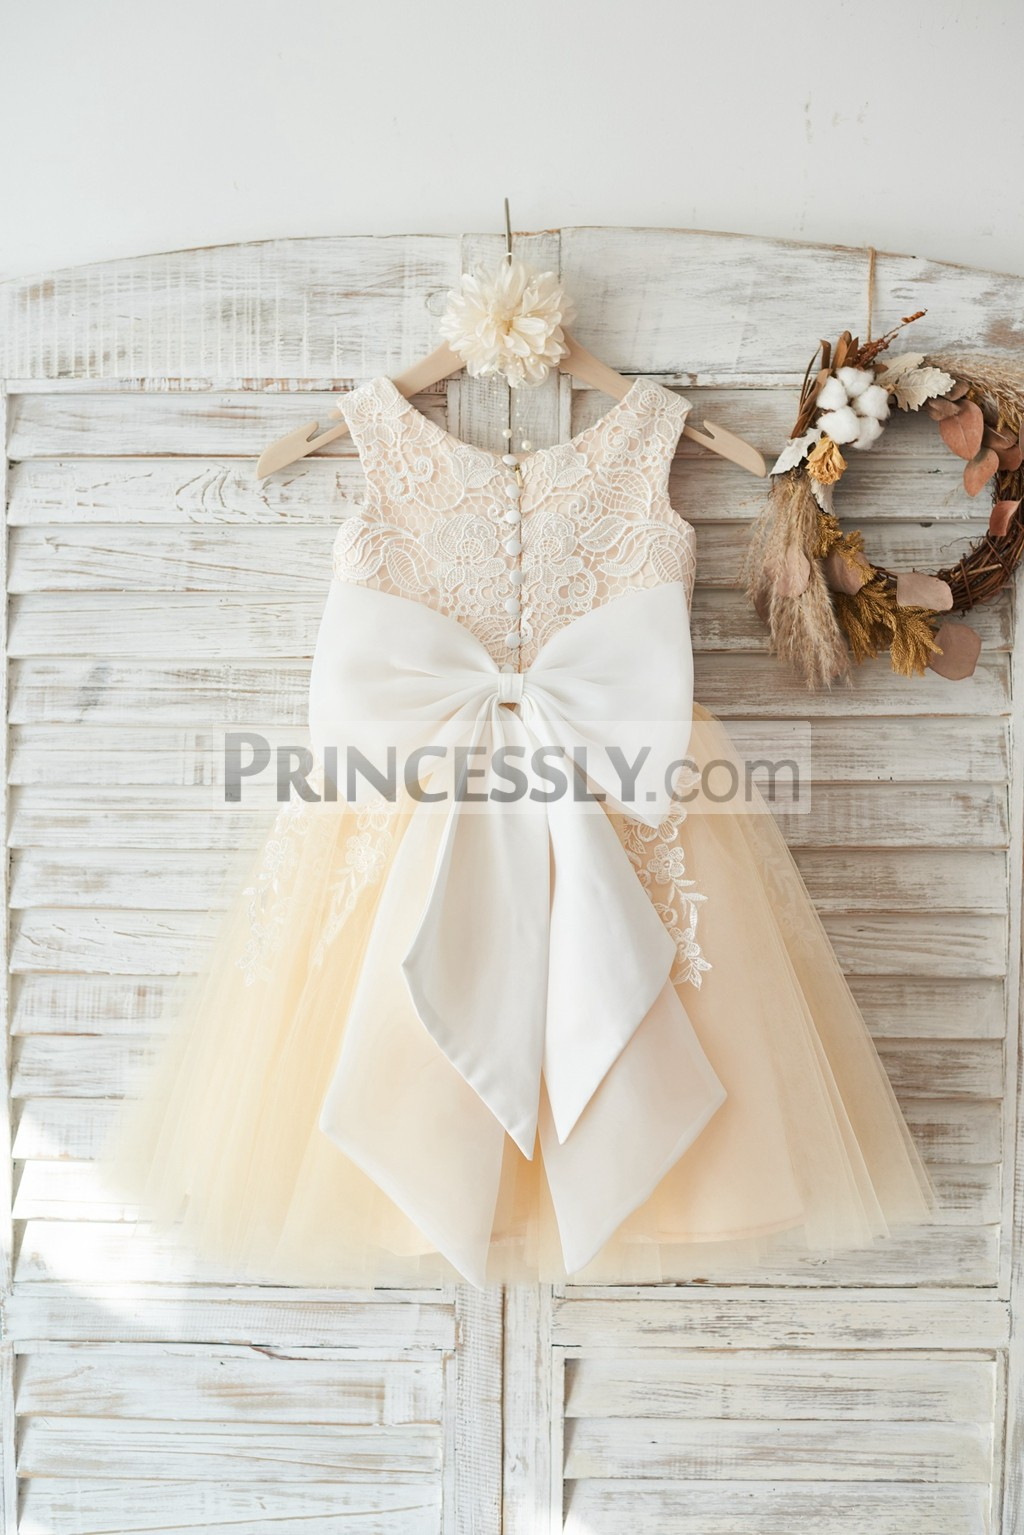 538f8b815 Lace tulle wedding baby girl dress with big bow and buttons. Scoop neckline  sleeveless ivory floral ...